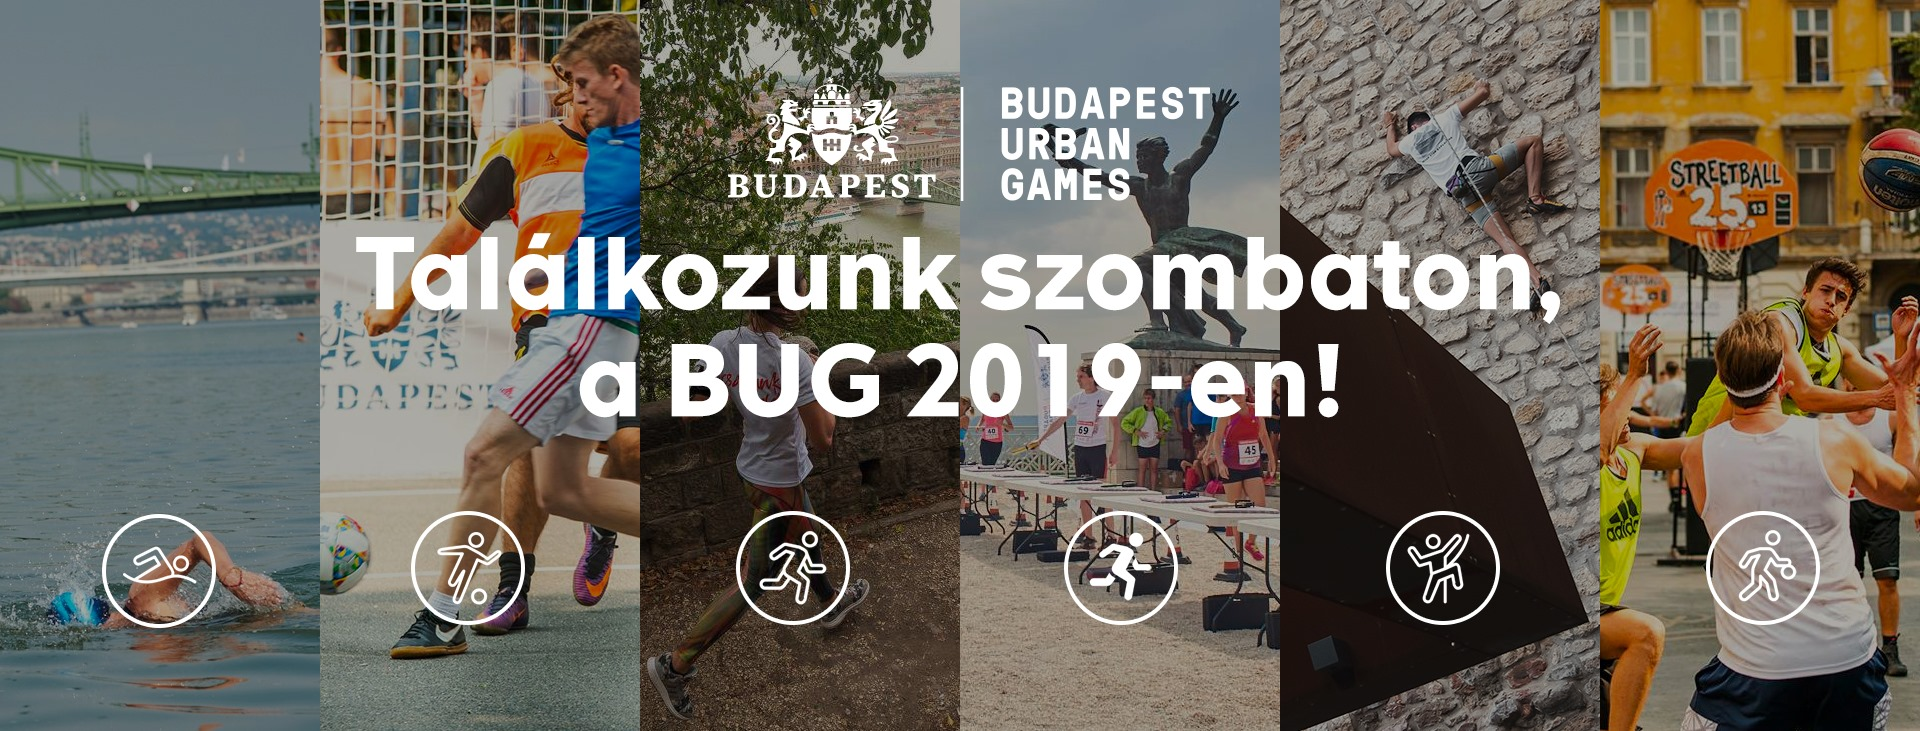 bug-budapest-urban-games-cover.jpg